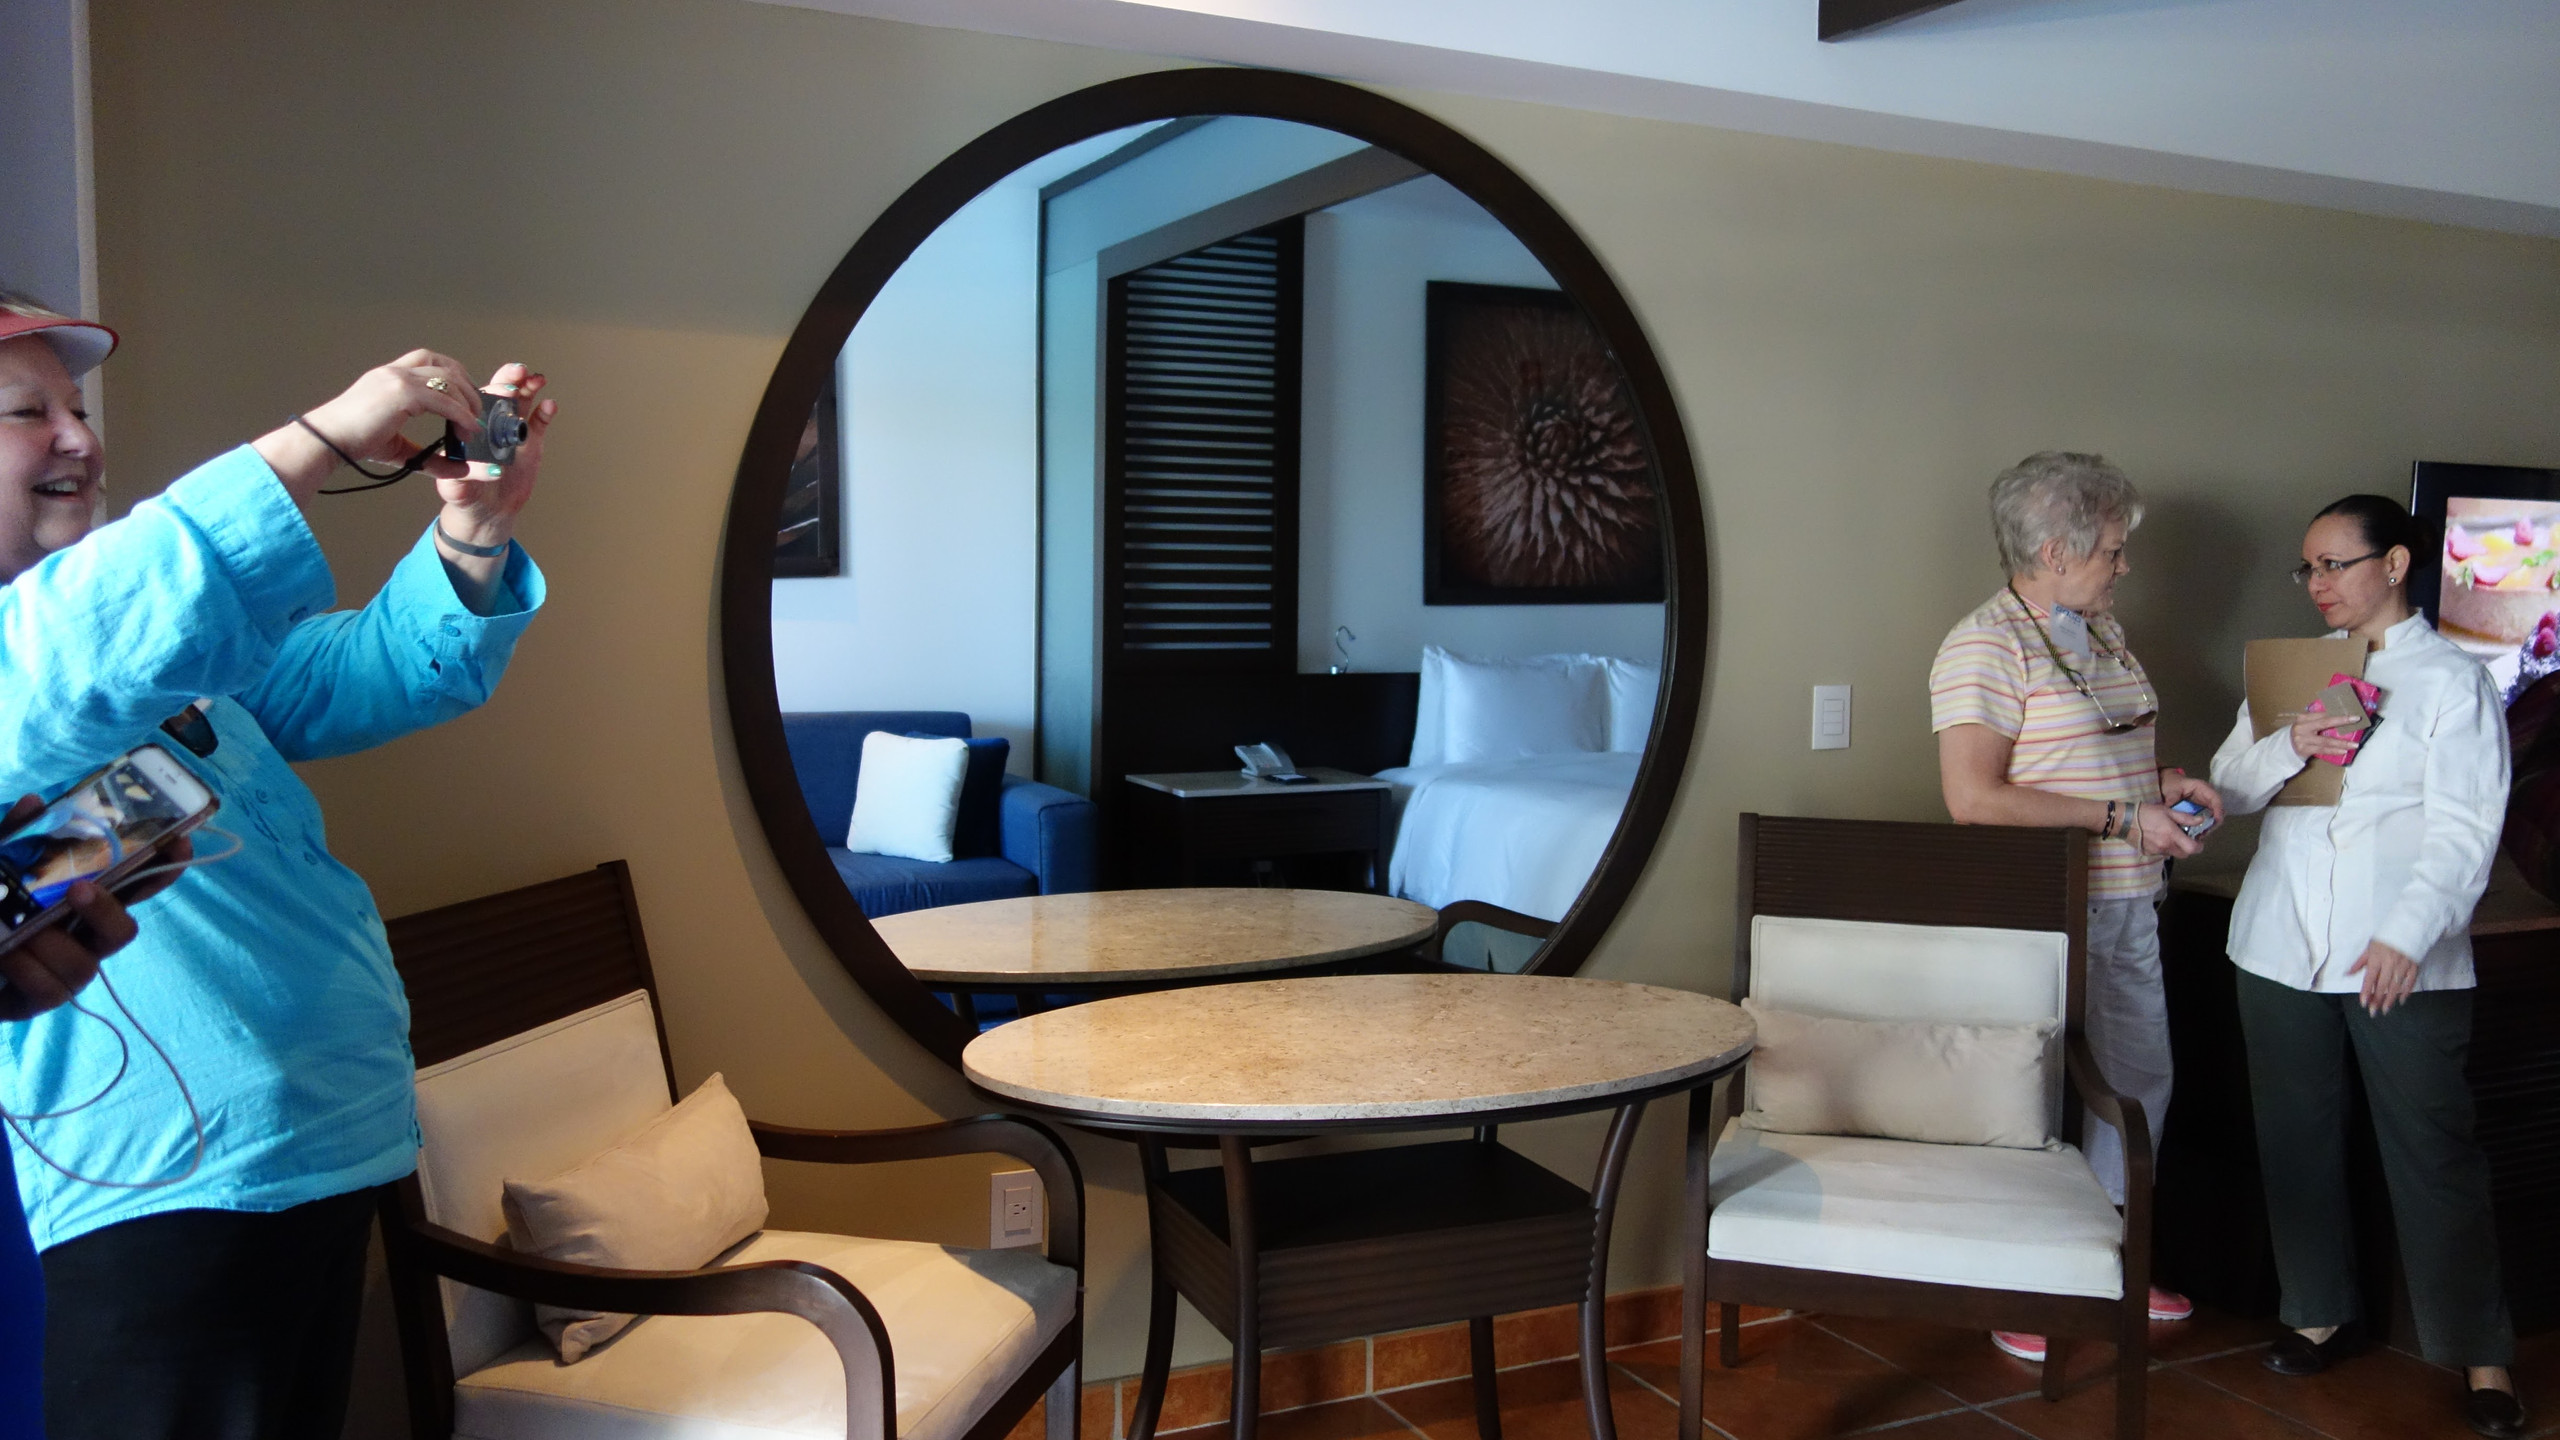 A nice seating area for when you get room service.